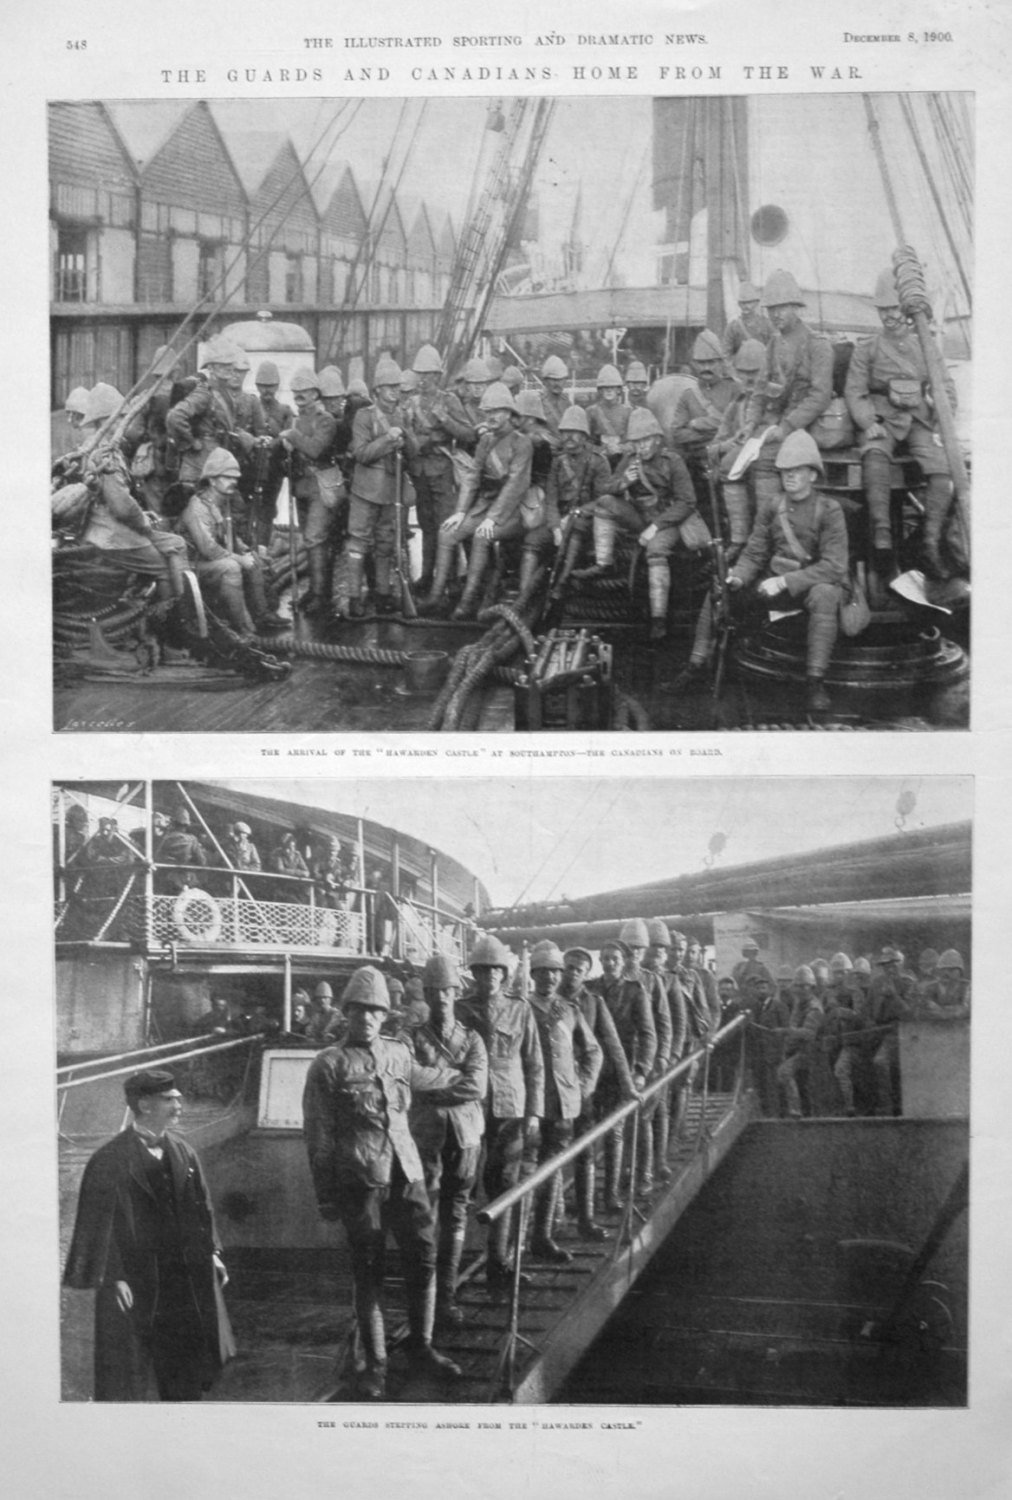 The Guards and Canadians Home from the War. 1900